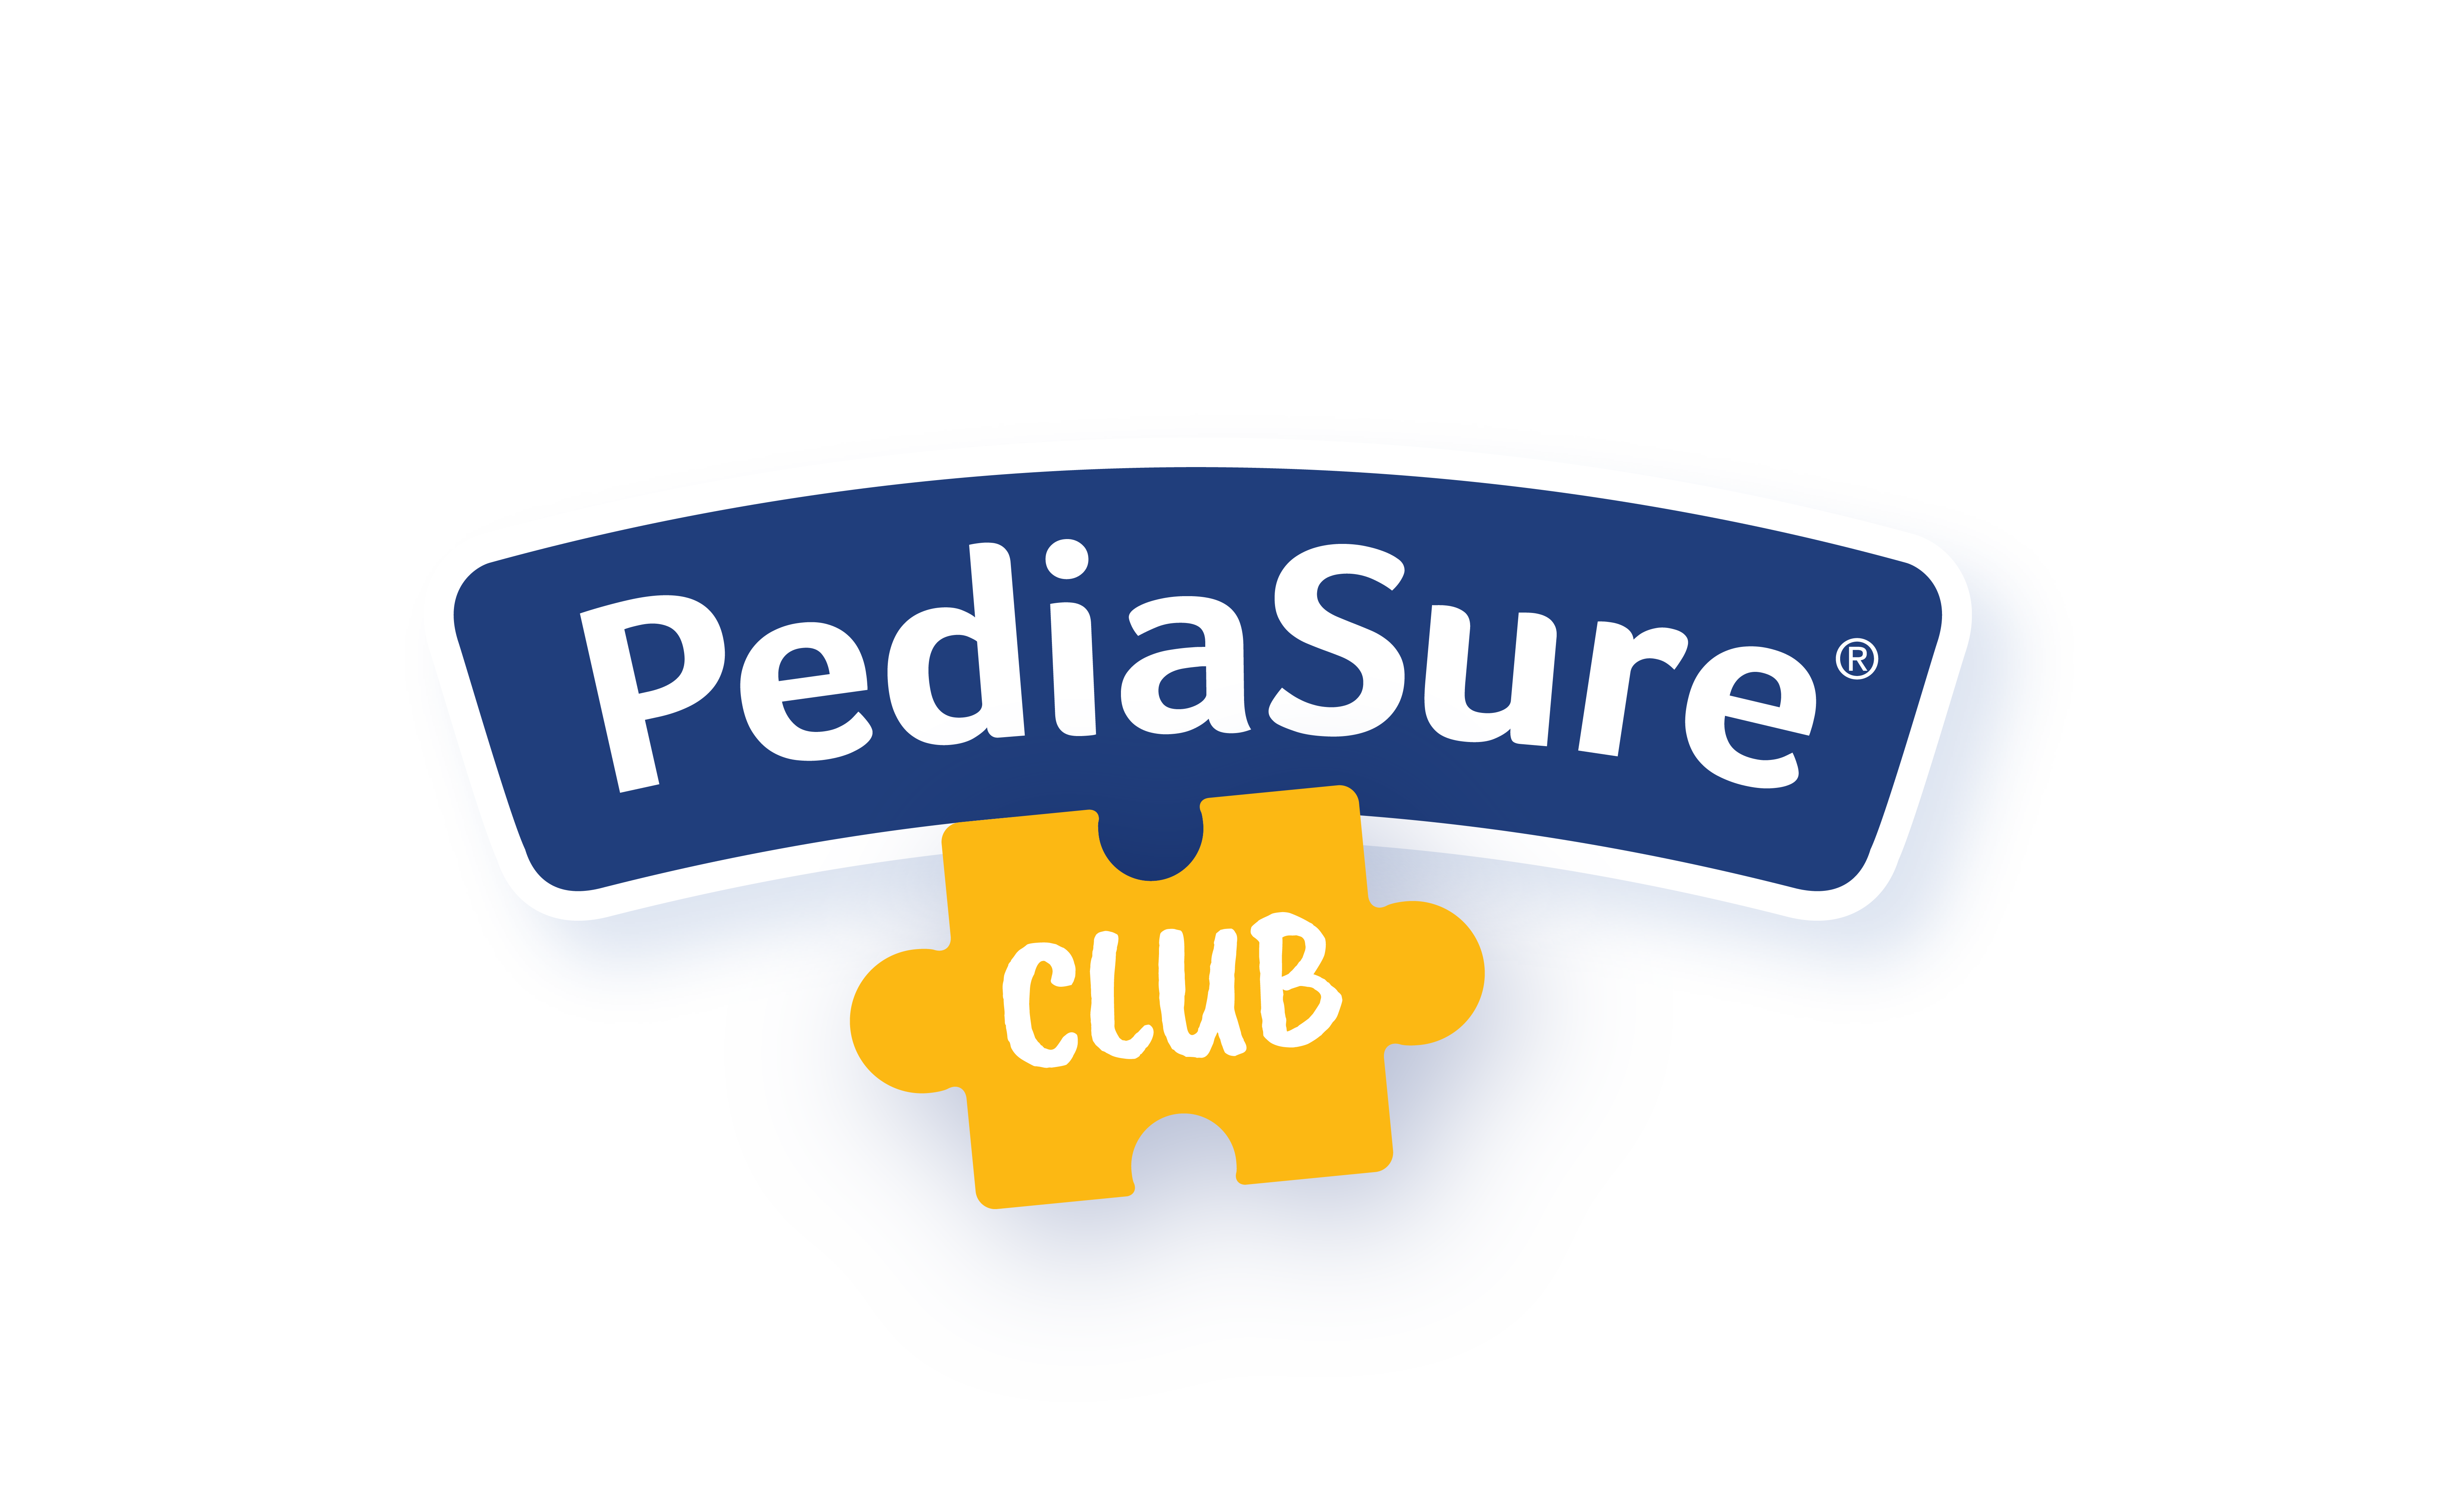 PediaSure Club